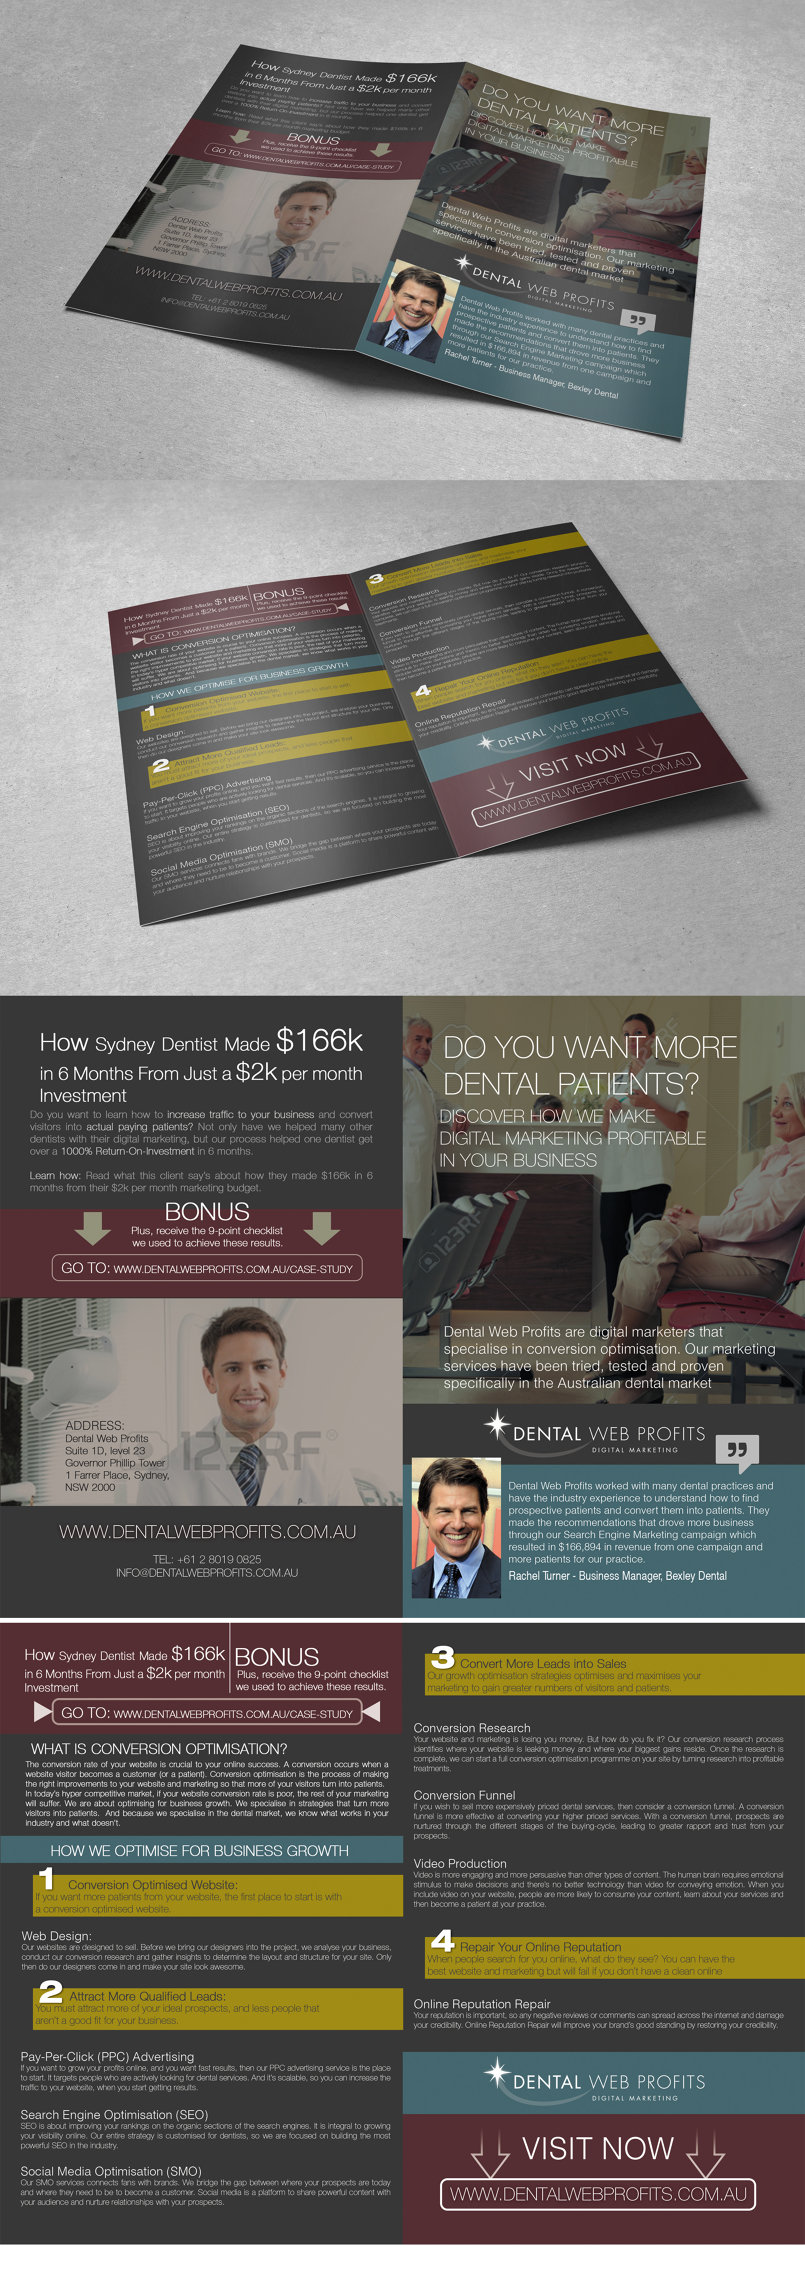 captivate dentists brochure design